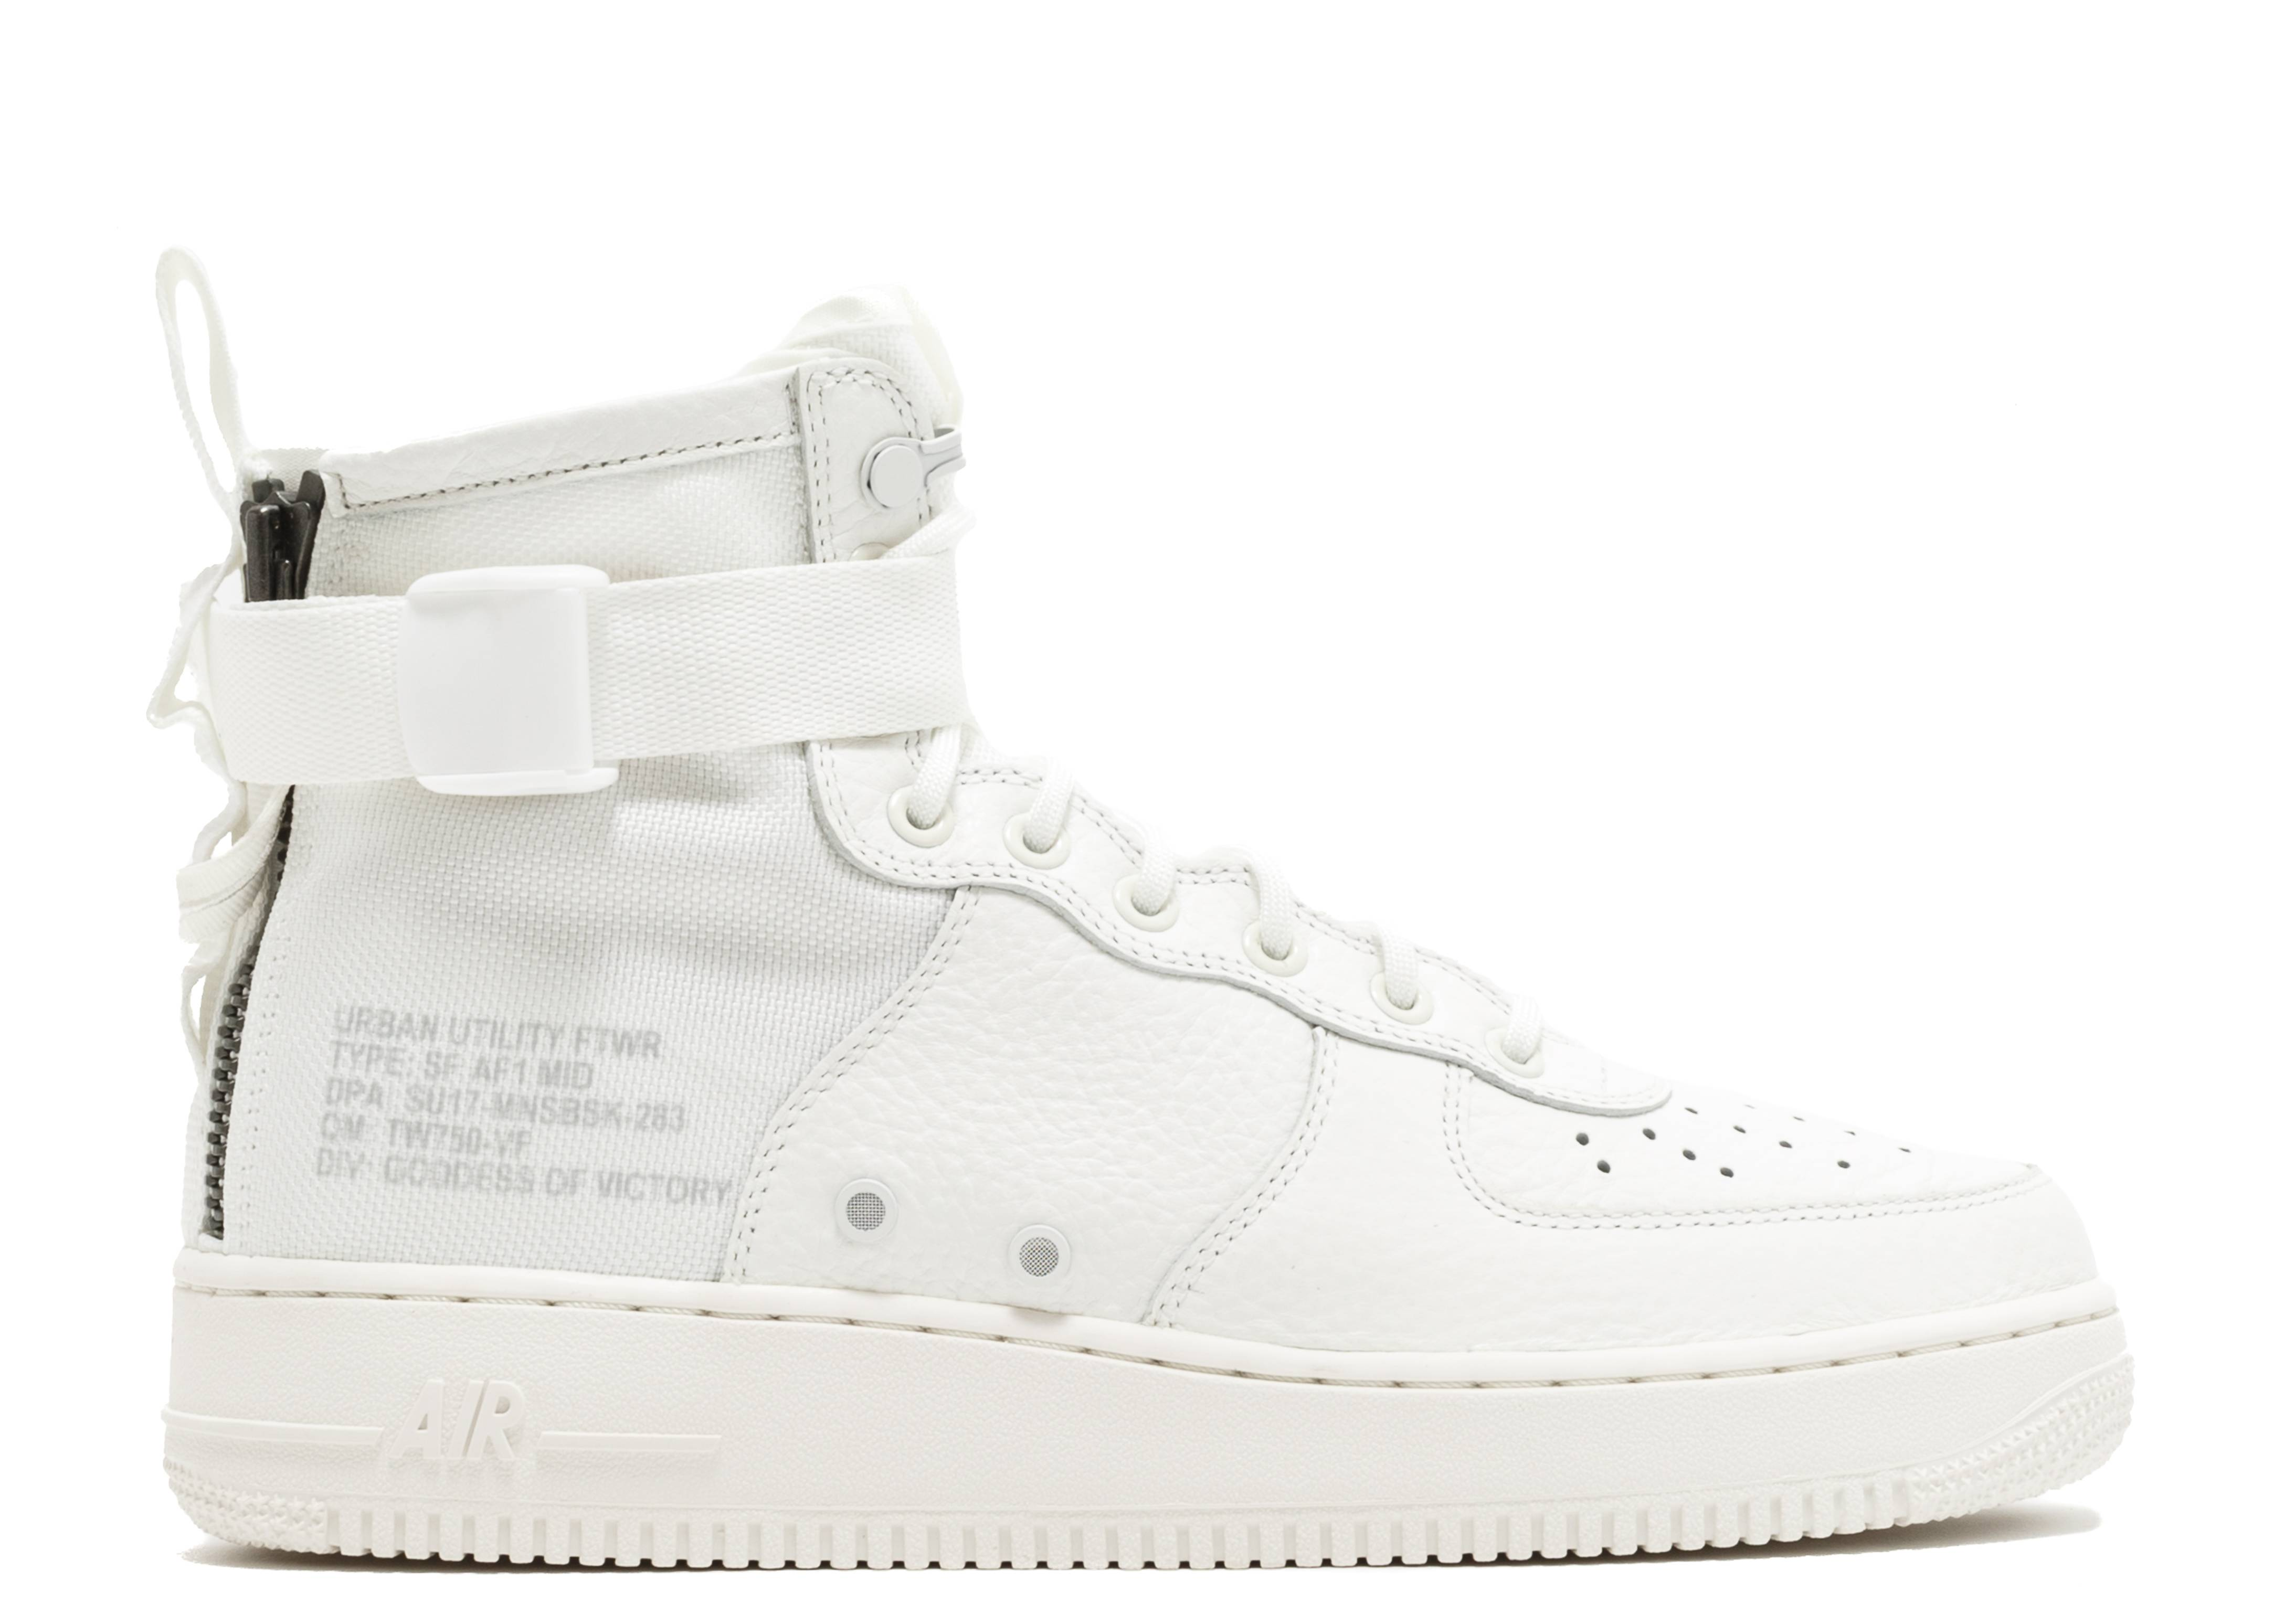 Nike Special Field Air Force 1 Mid Triple Ivory AA6655 100